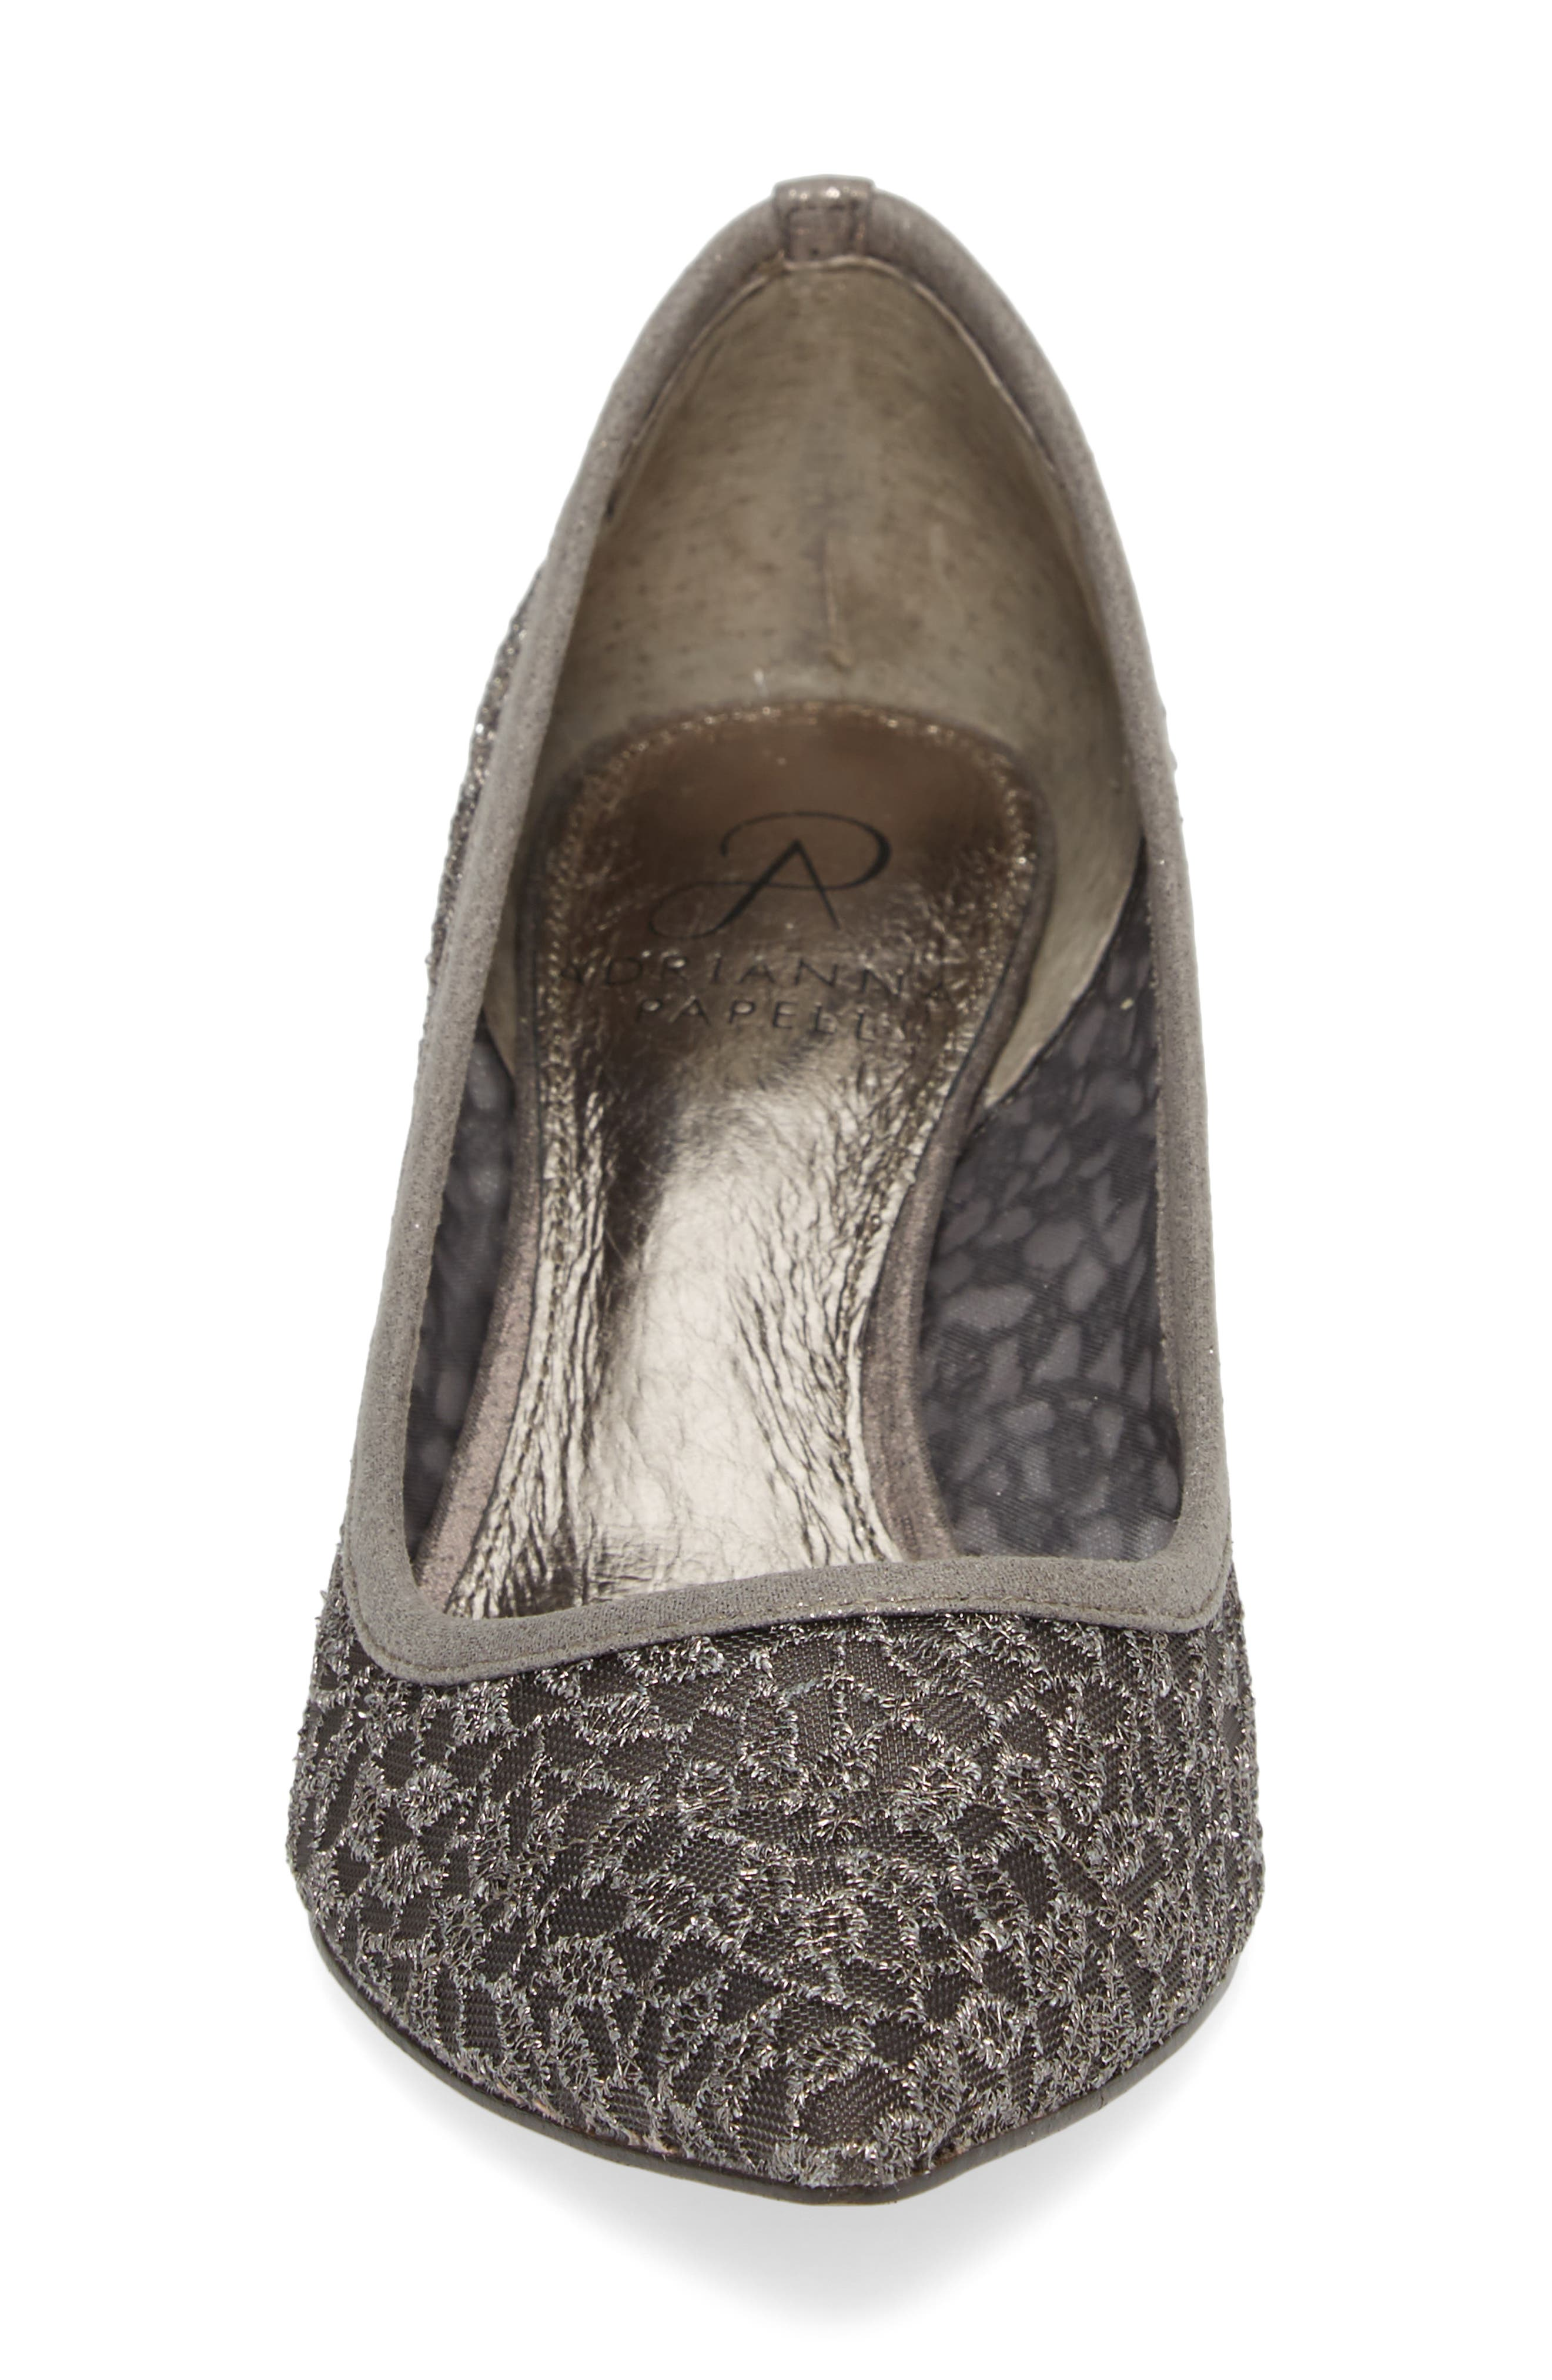 ADRIANNA PAPELL,                             'Lois' Mesh Pump,                             Alternate thumbnail 4, color,                             GUNMETAL LACE FABRIC